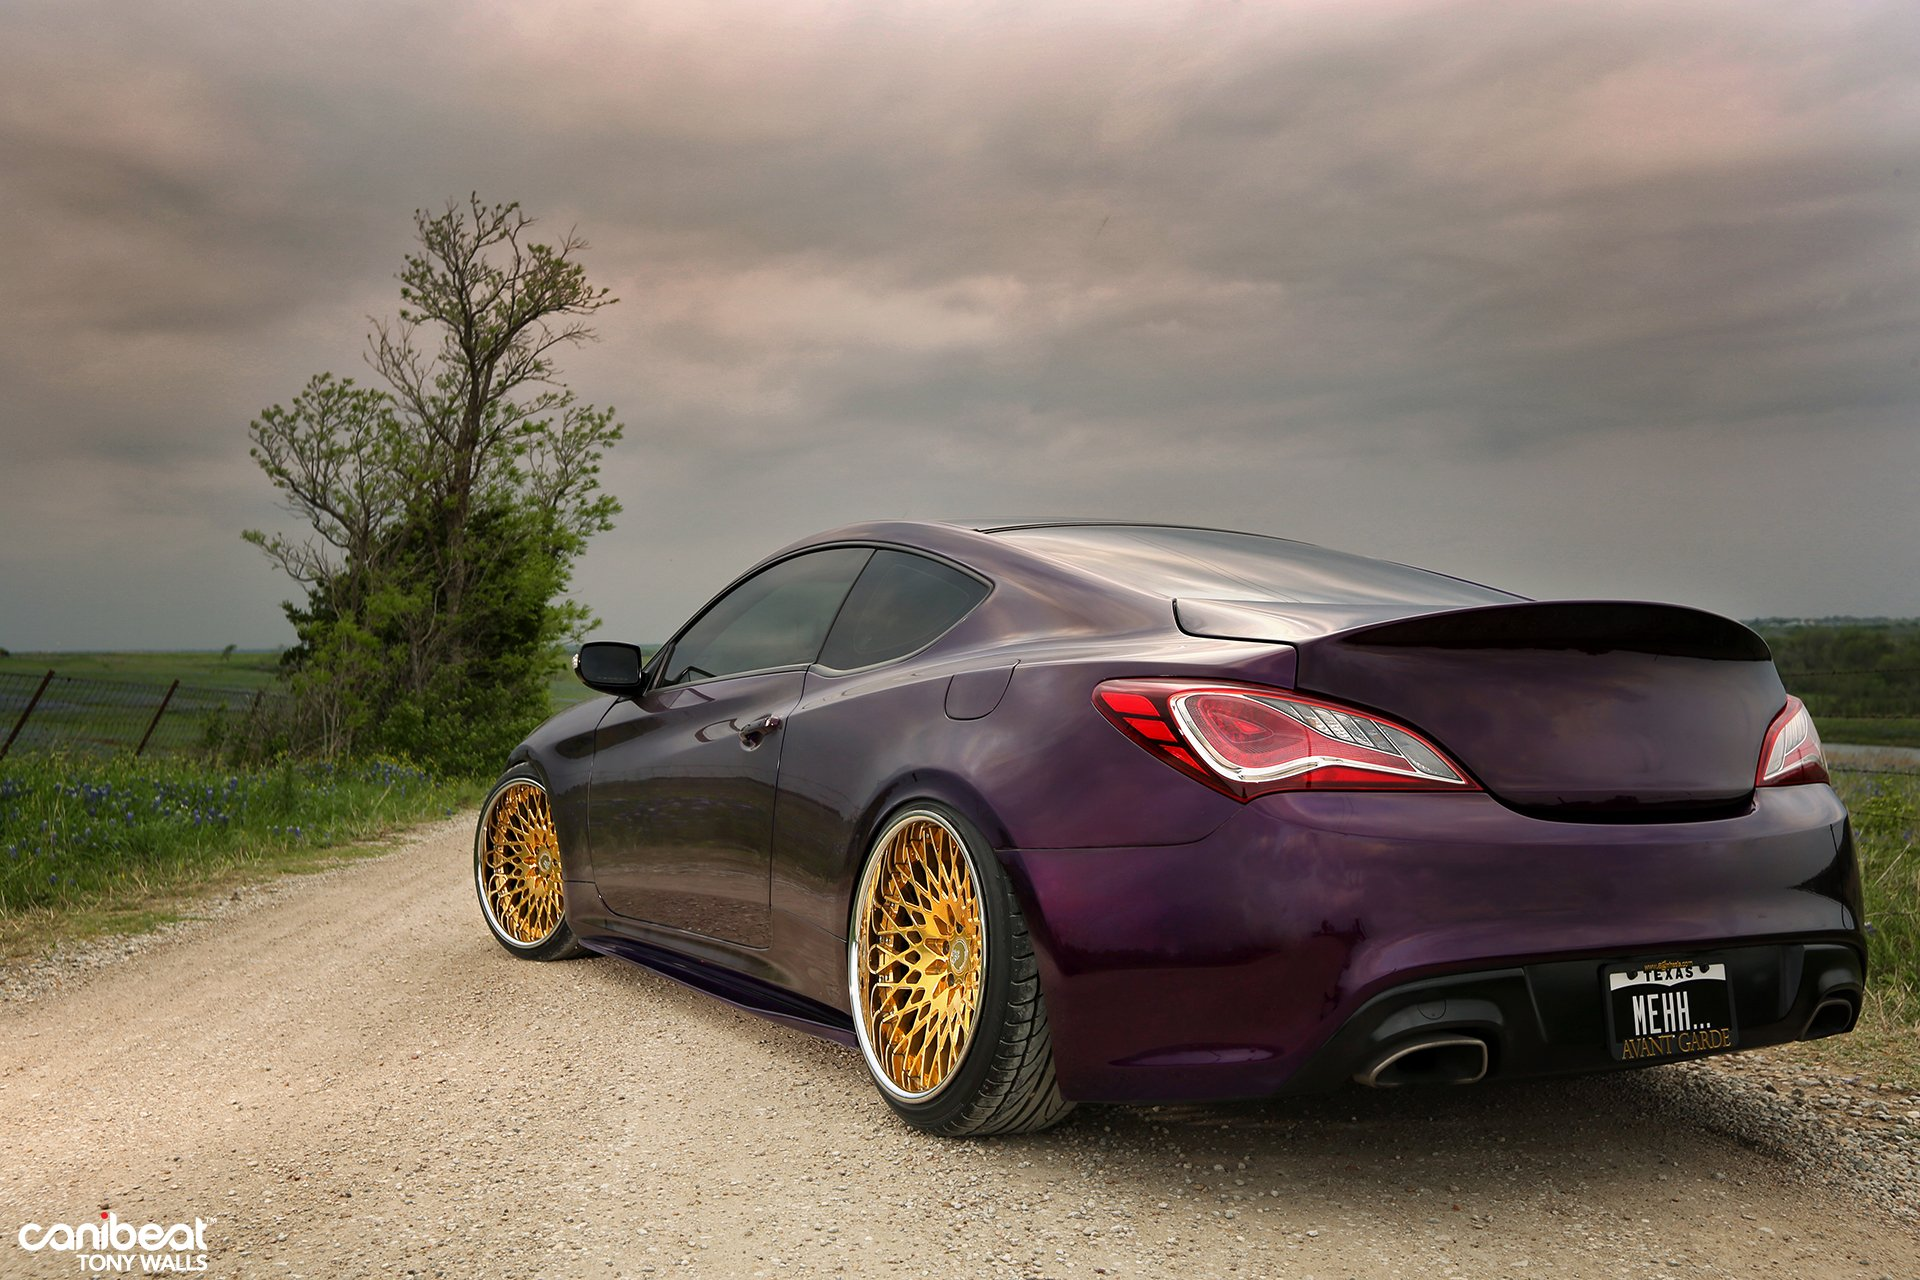 hyundai genesis coupe tuning custom wallpaper 1920x1280. Black Bedroom Furniture Sets. Home Design Ideas